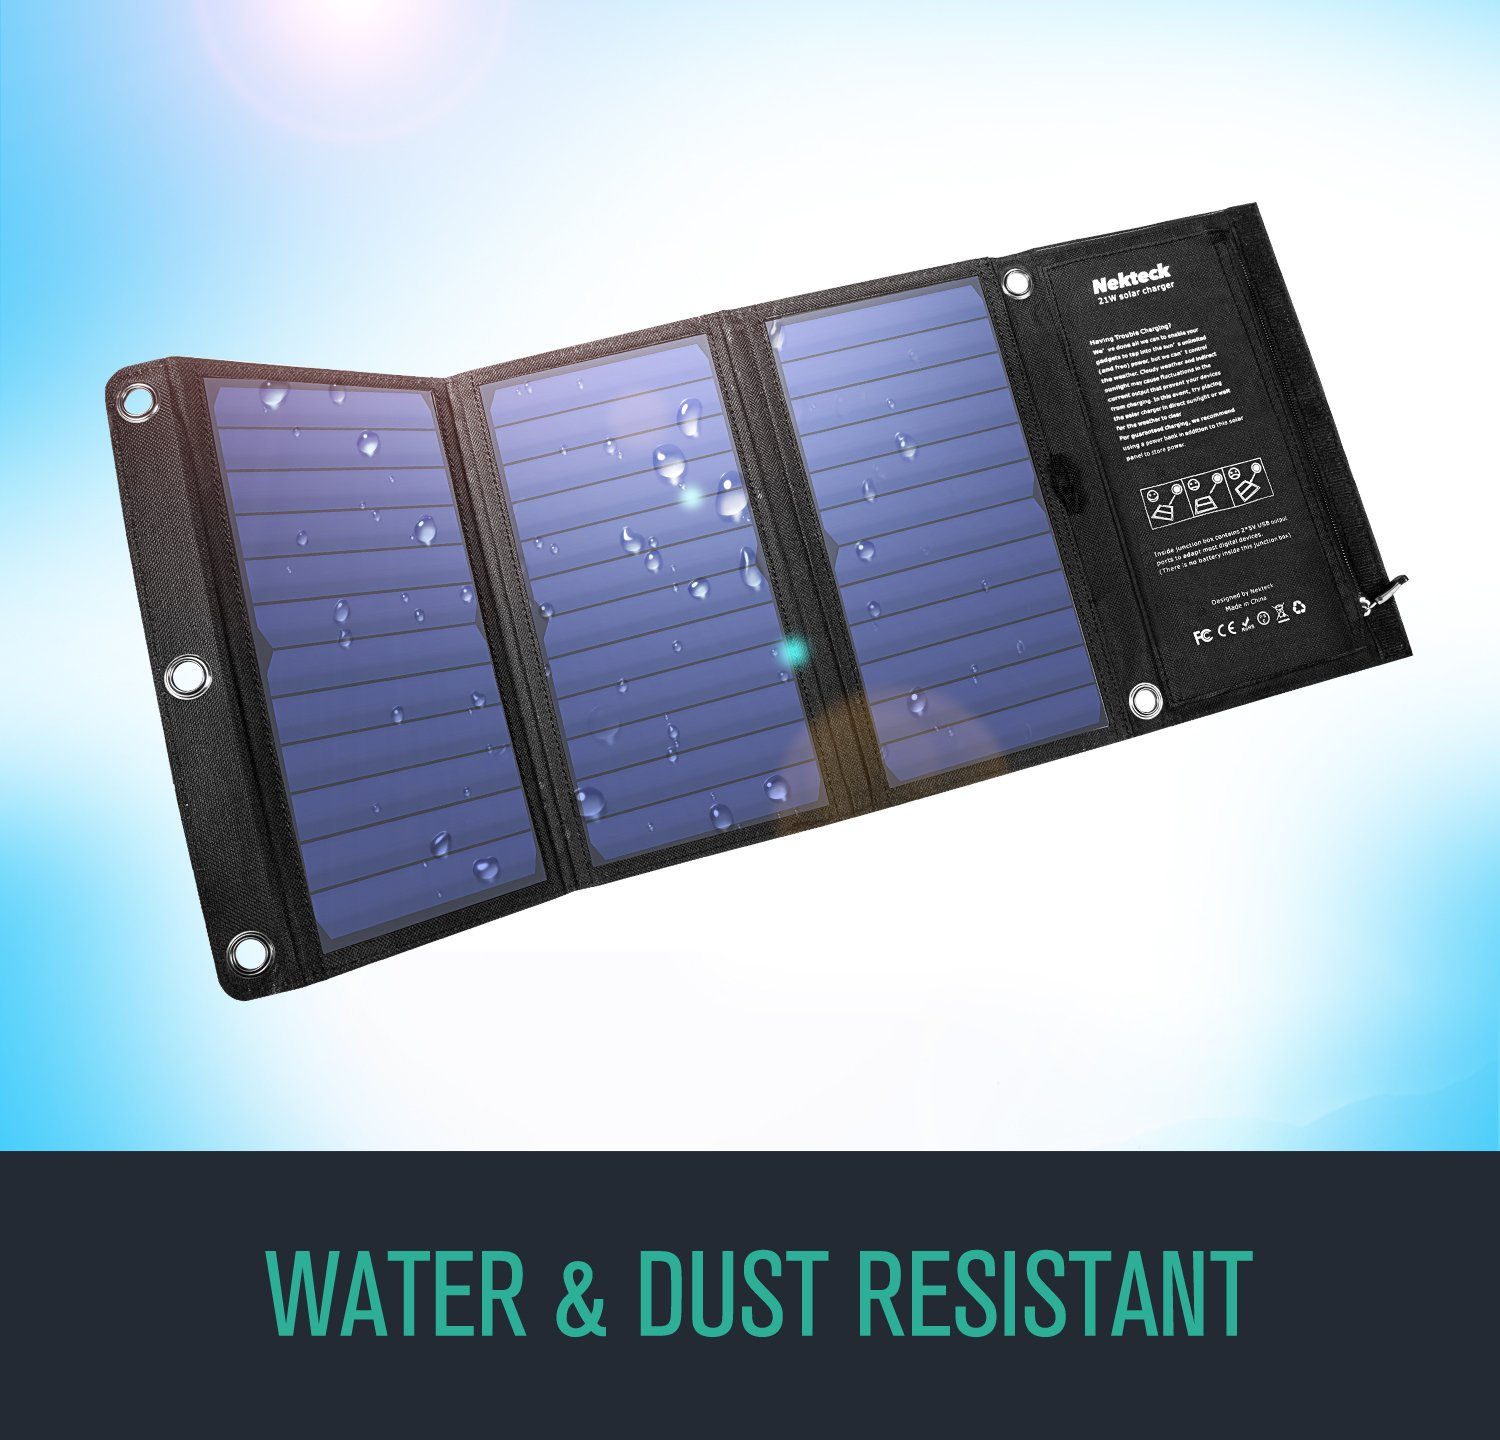 Nekteck 21W Solar Charger with 2-Port USB Charger Build with High Efficiency Solar Panel Cell for iPhone 6s / 6 / Plus, SE, iPad, Galaxy S6/S7/ Edge/Plus, Nexus 5X/6P, Any USB Devices, and More by Nekteck (Image #4)